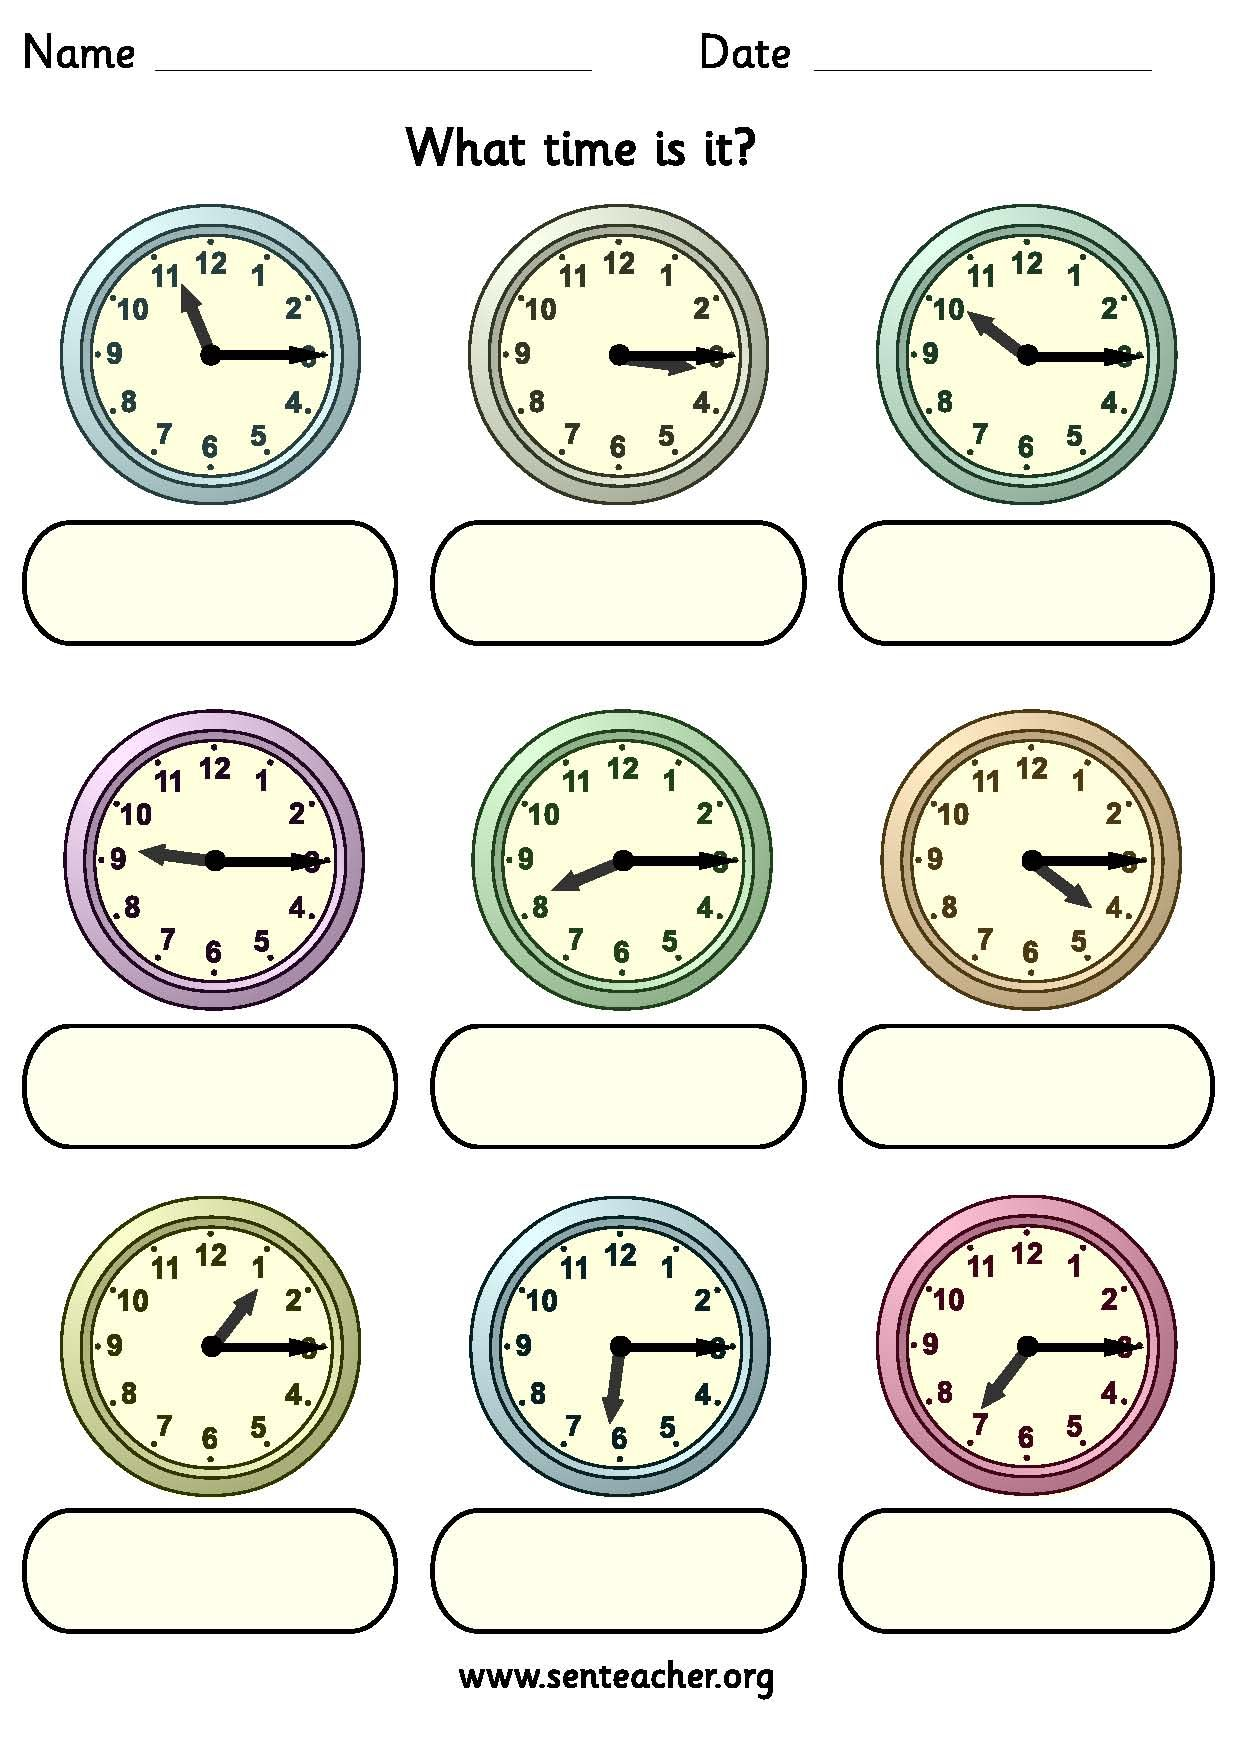 Worksheet Containing 9ogue Clocks Showing Quarter Past Times With Space To Write In The